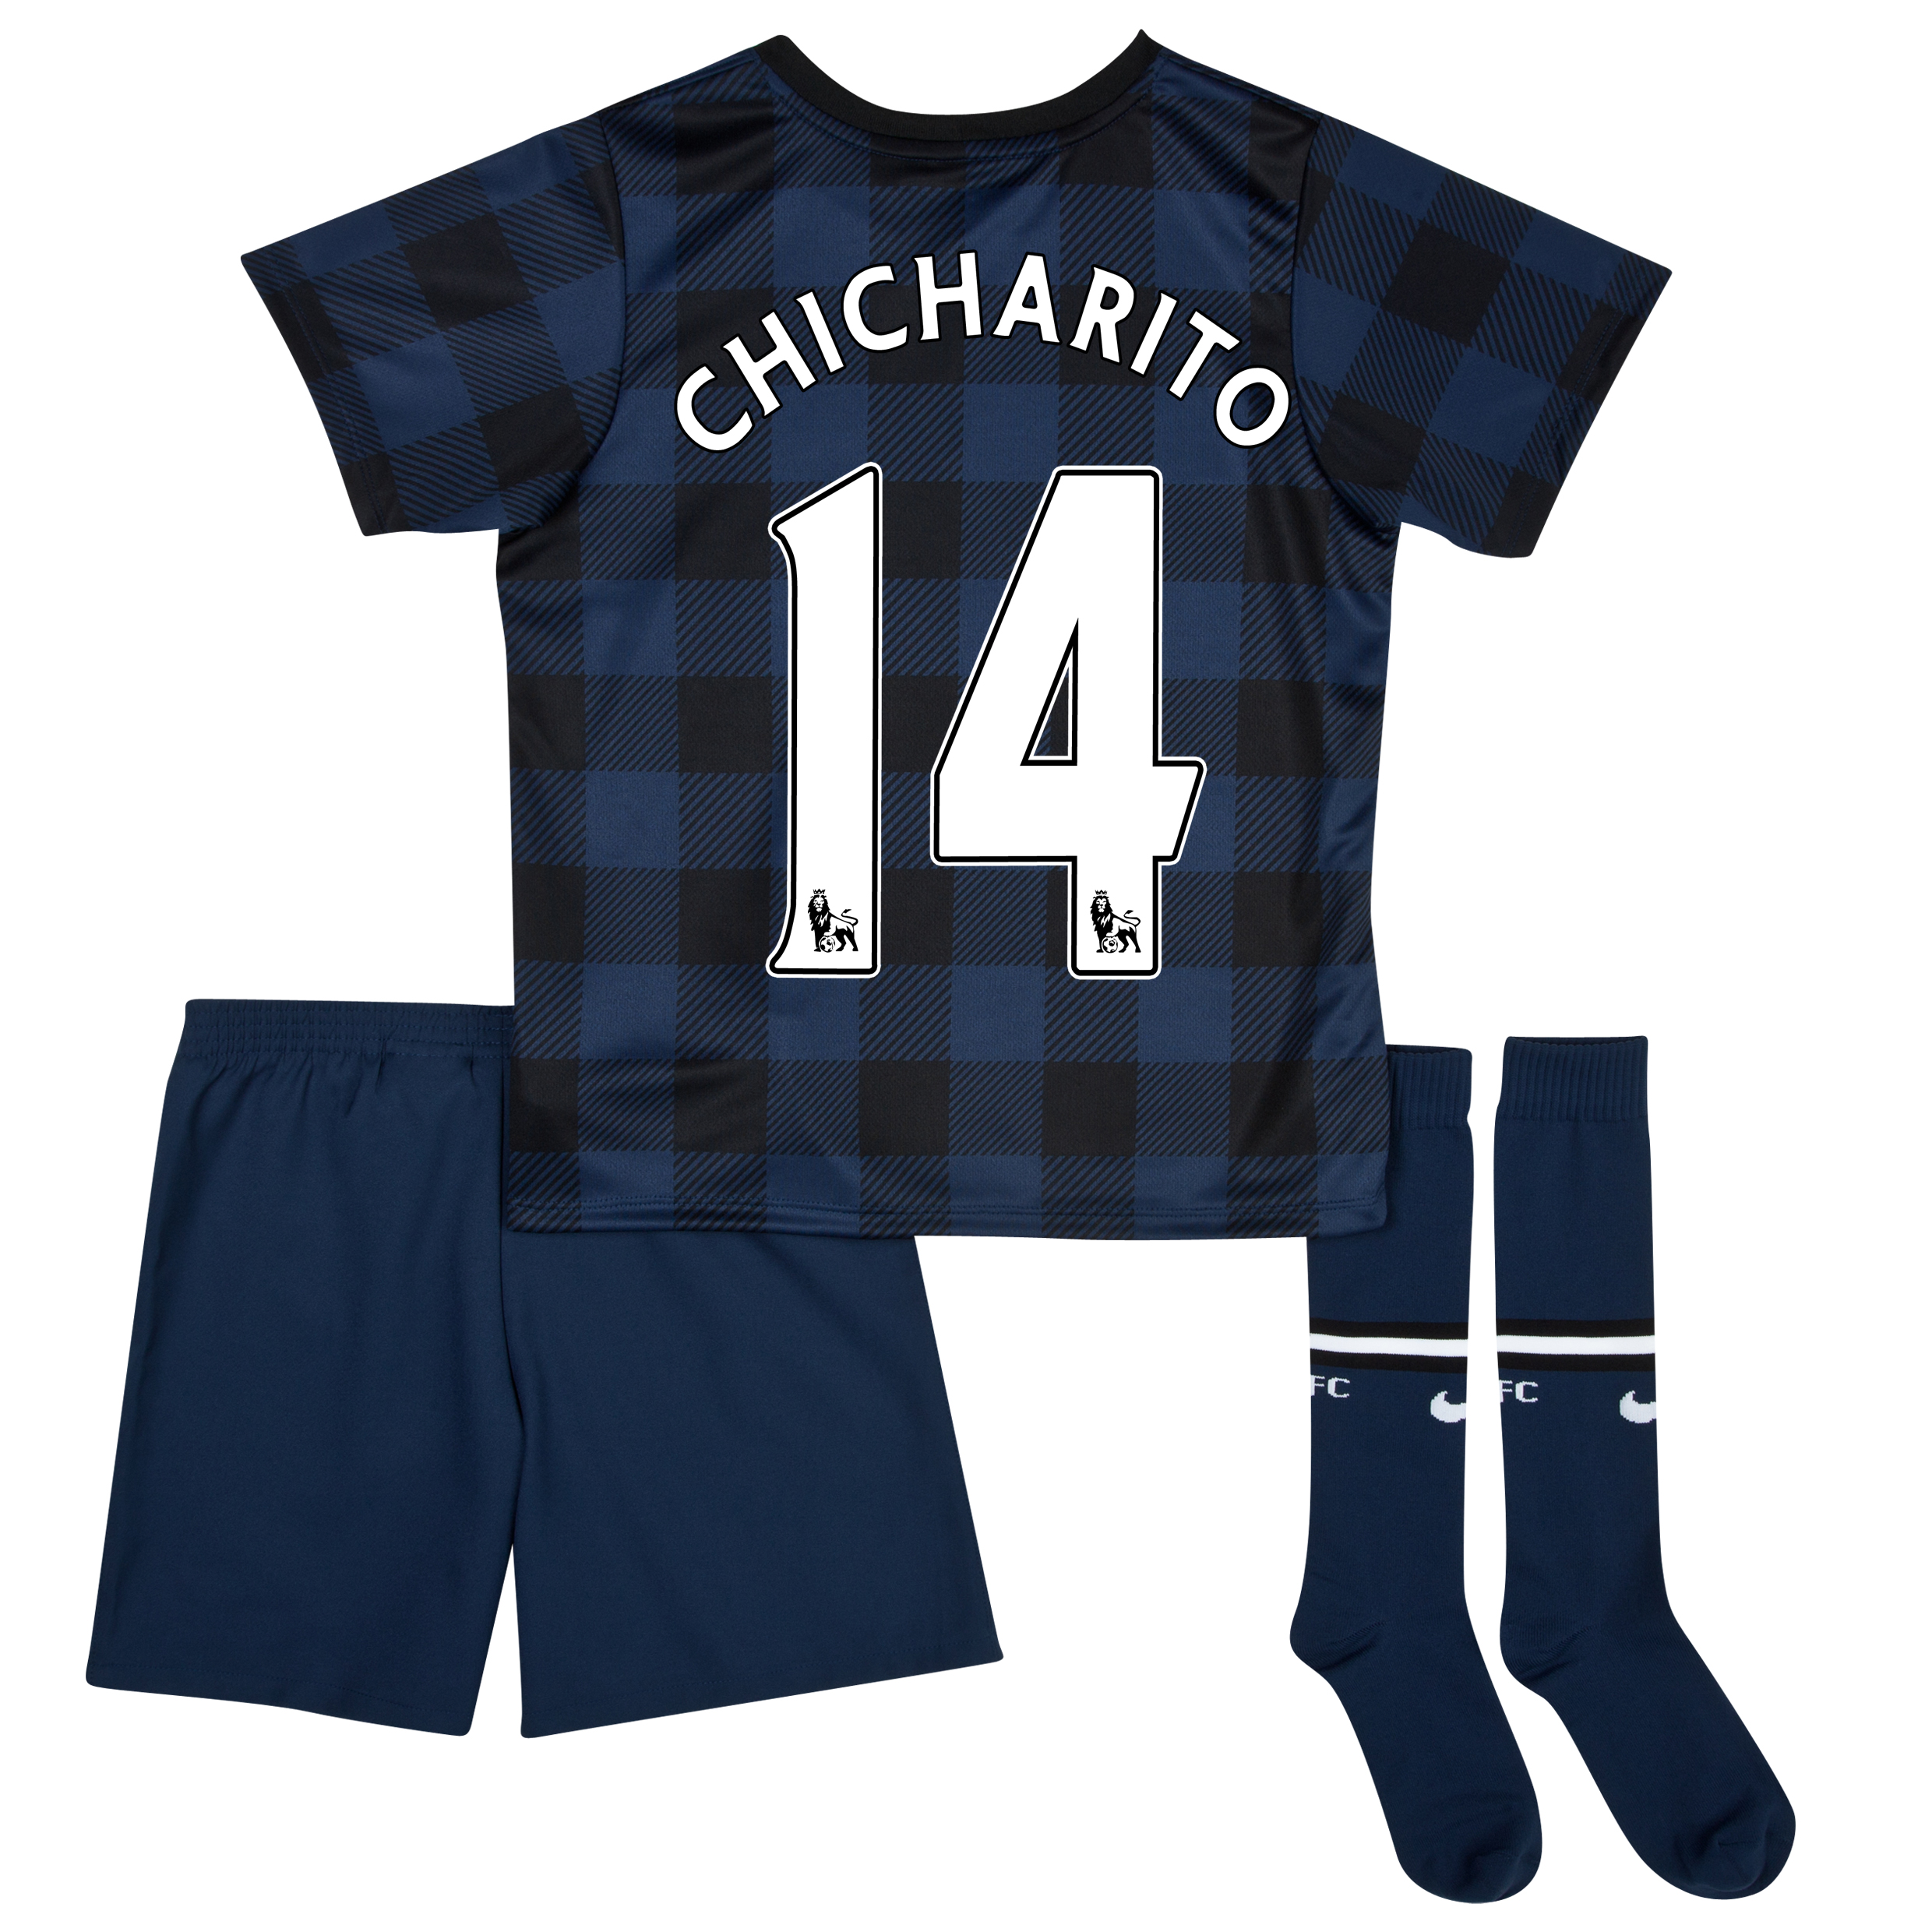 Manchester United Away Kit 2013/14 - Little Boys with Chicharito 14 printing